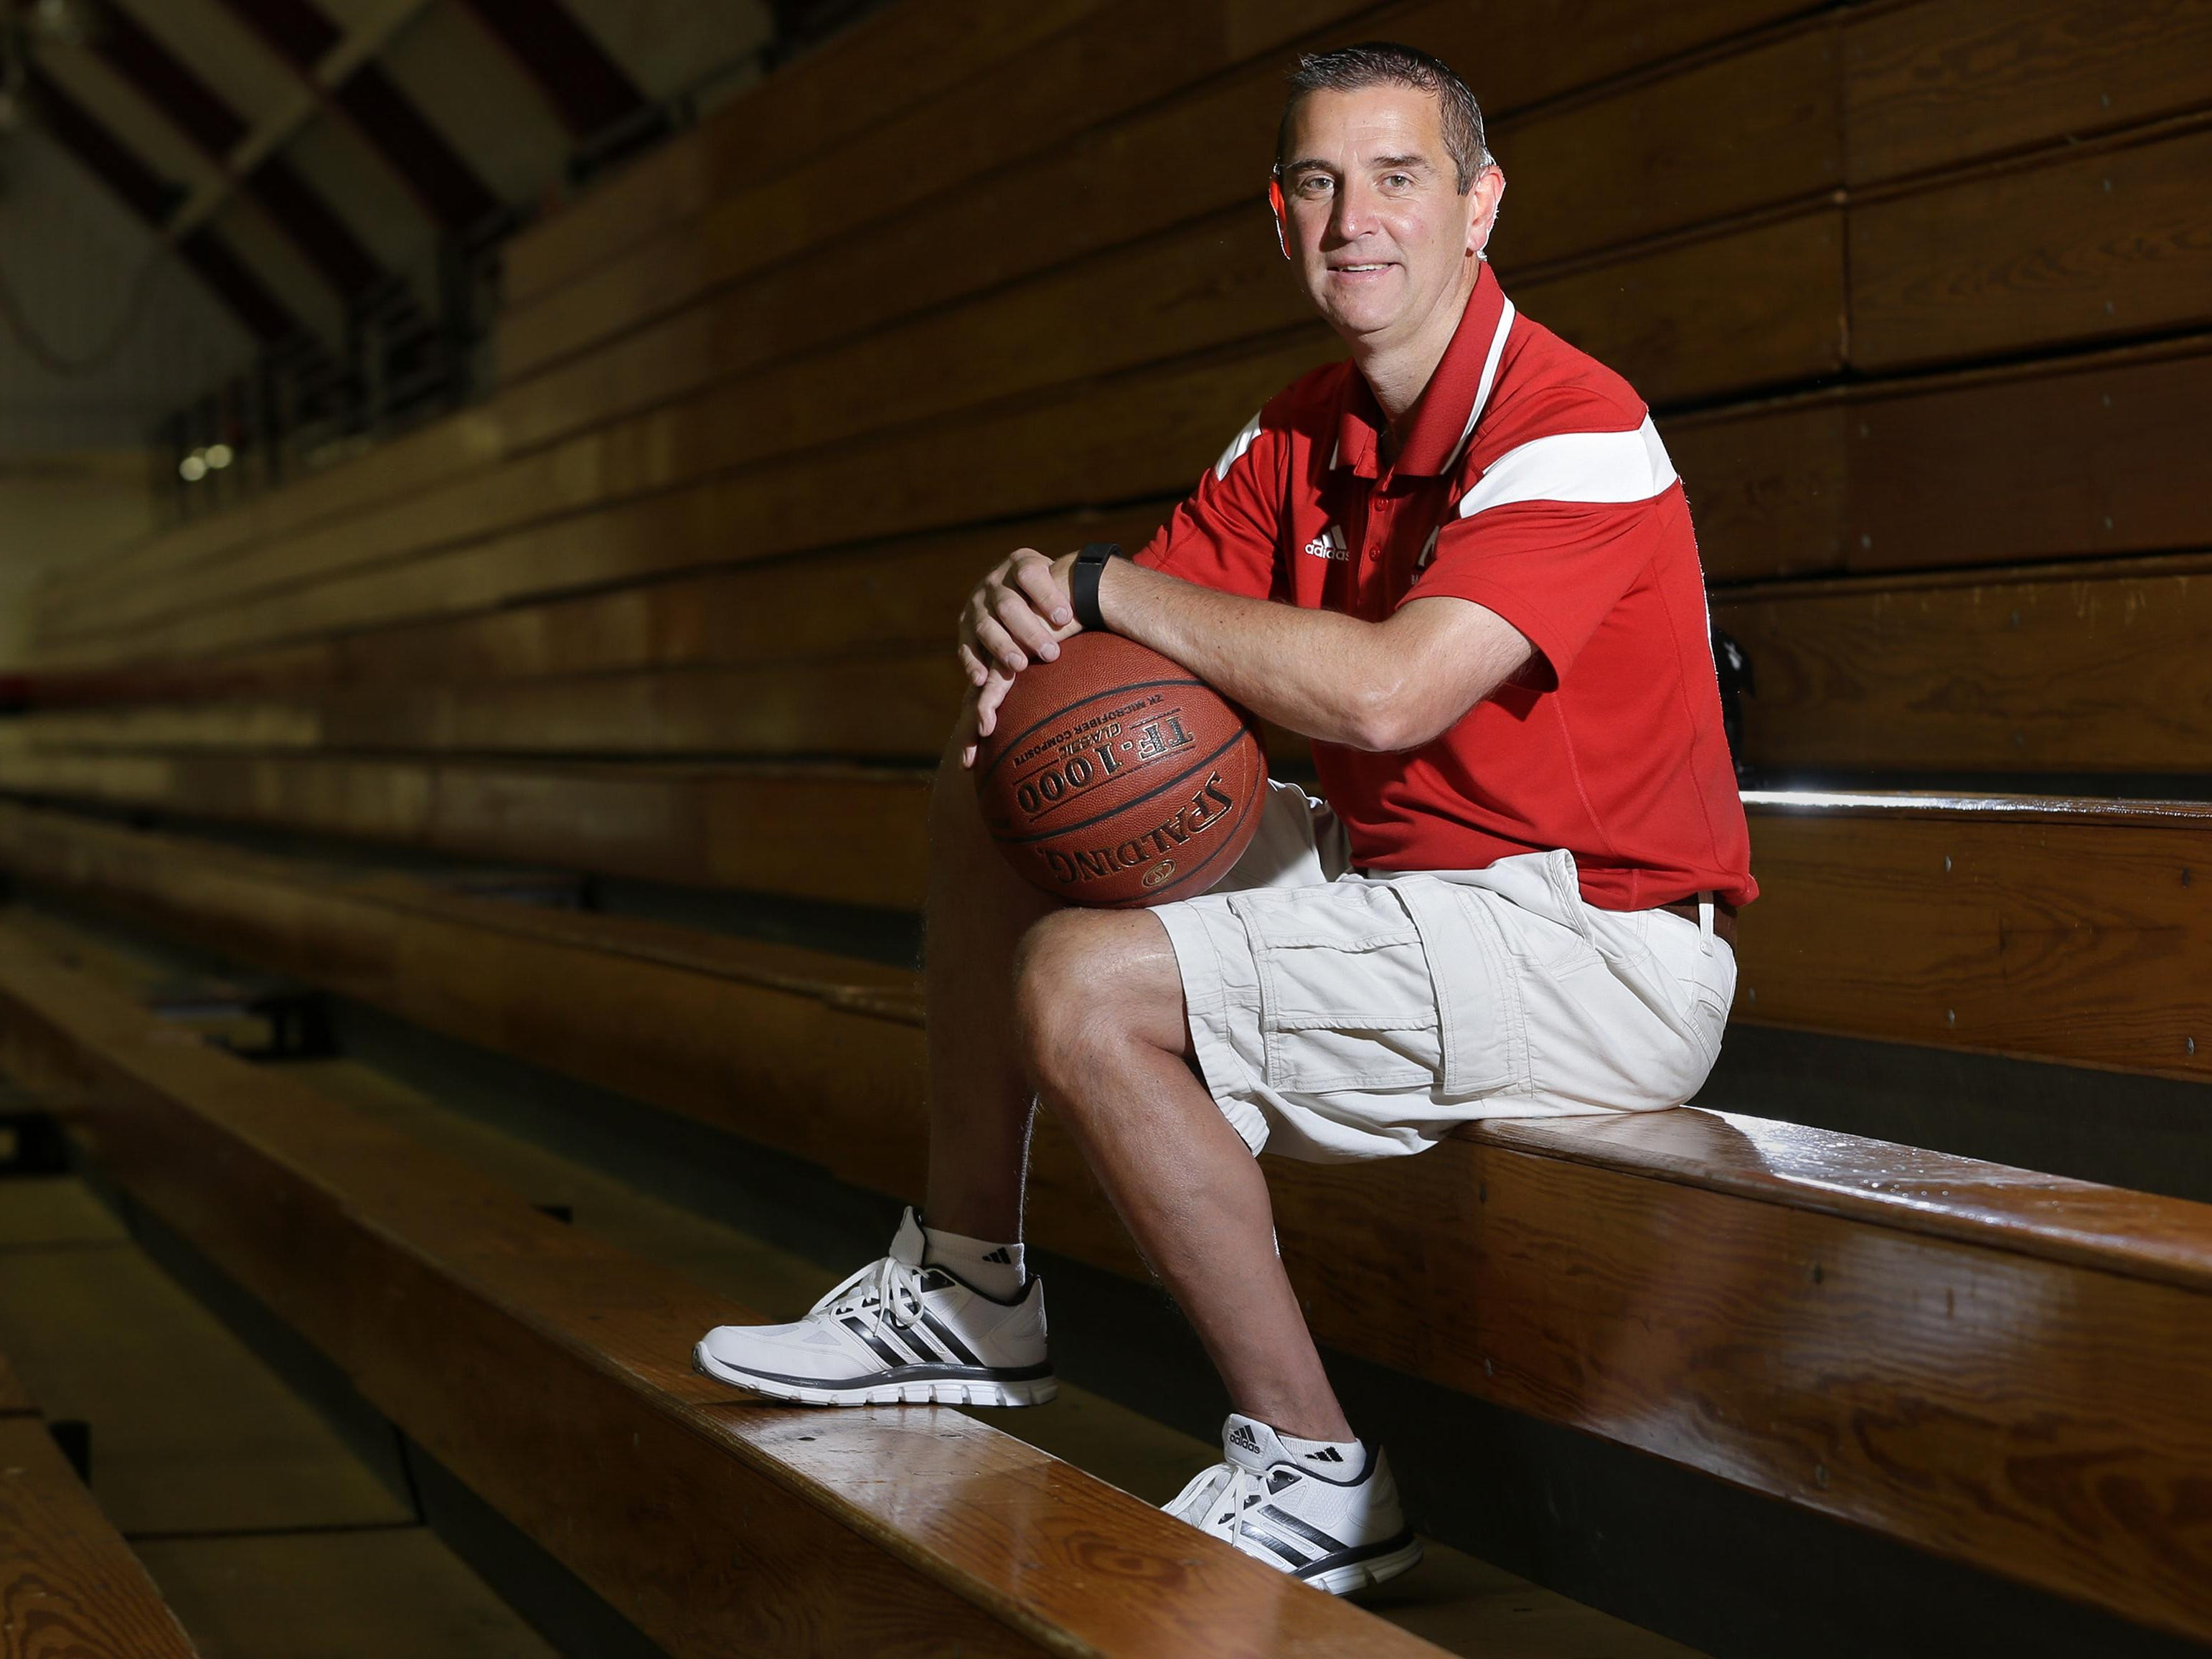 """Former Neenah boys' basketball head coach Scott Bork experienced a transient ischemic attack, or """"warning stroke,"""" during a game last season. Health concerns led to his resignation in May."""